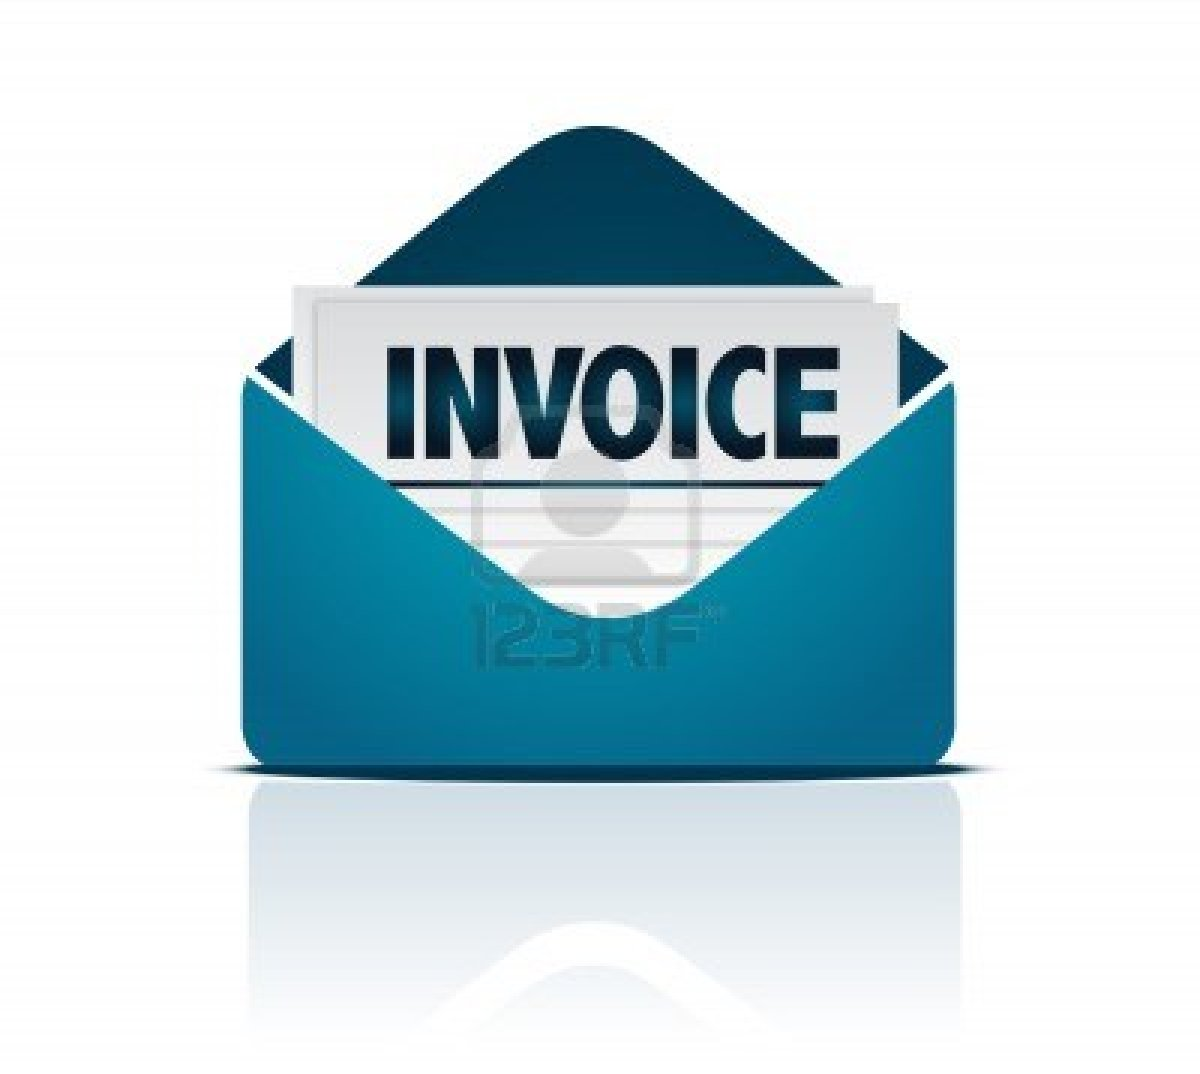 Invoice Payment Clipart.